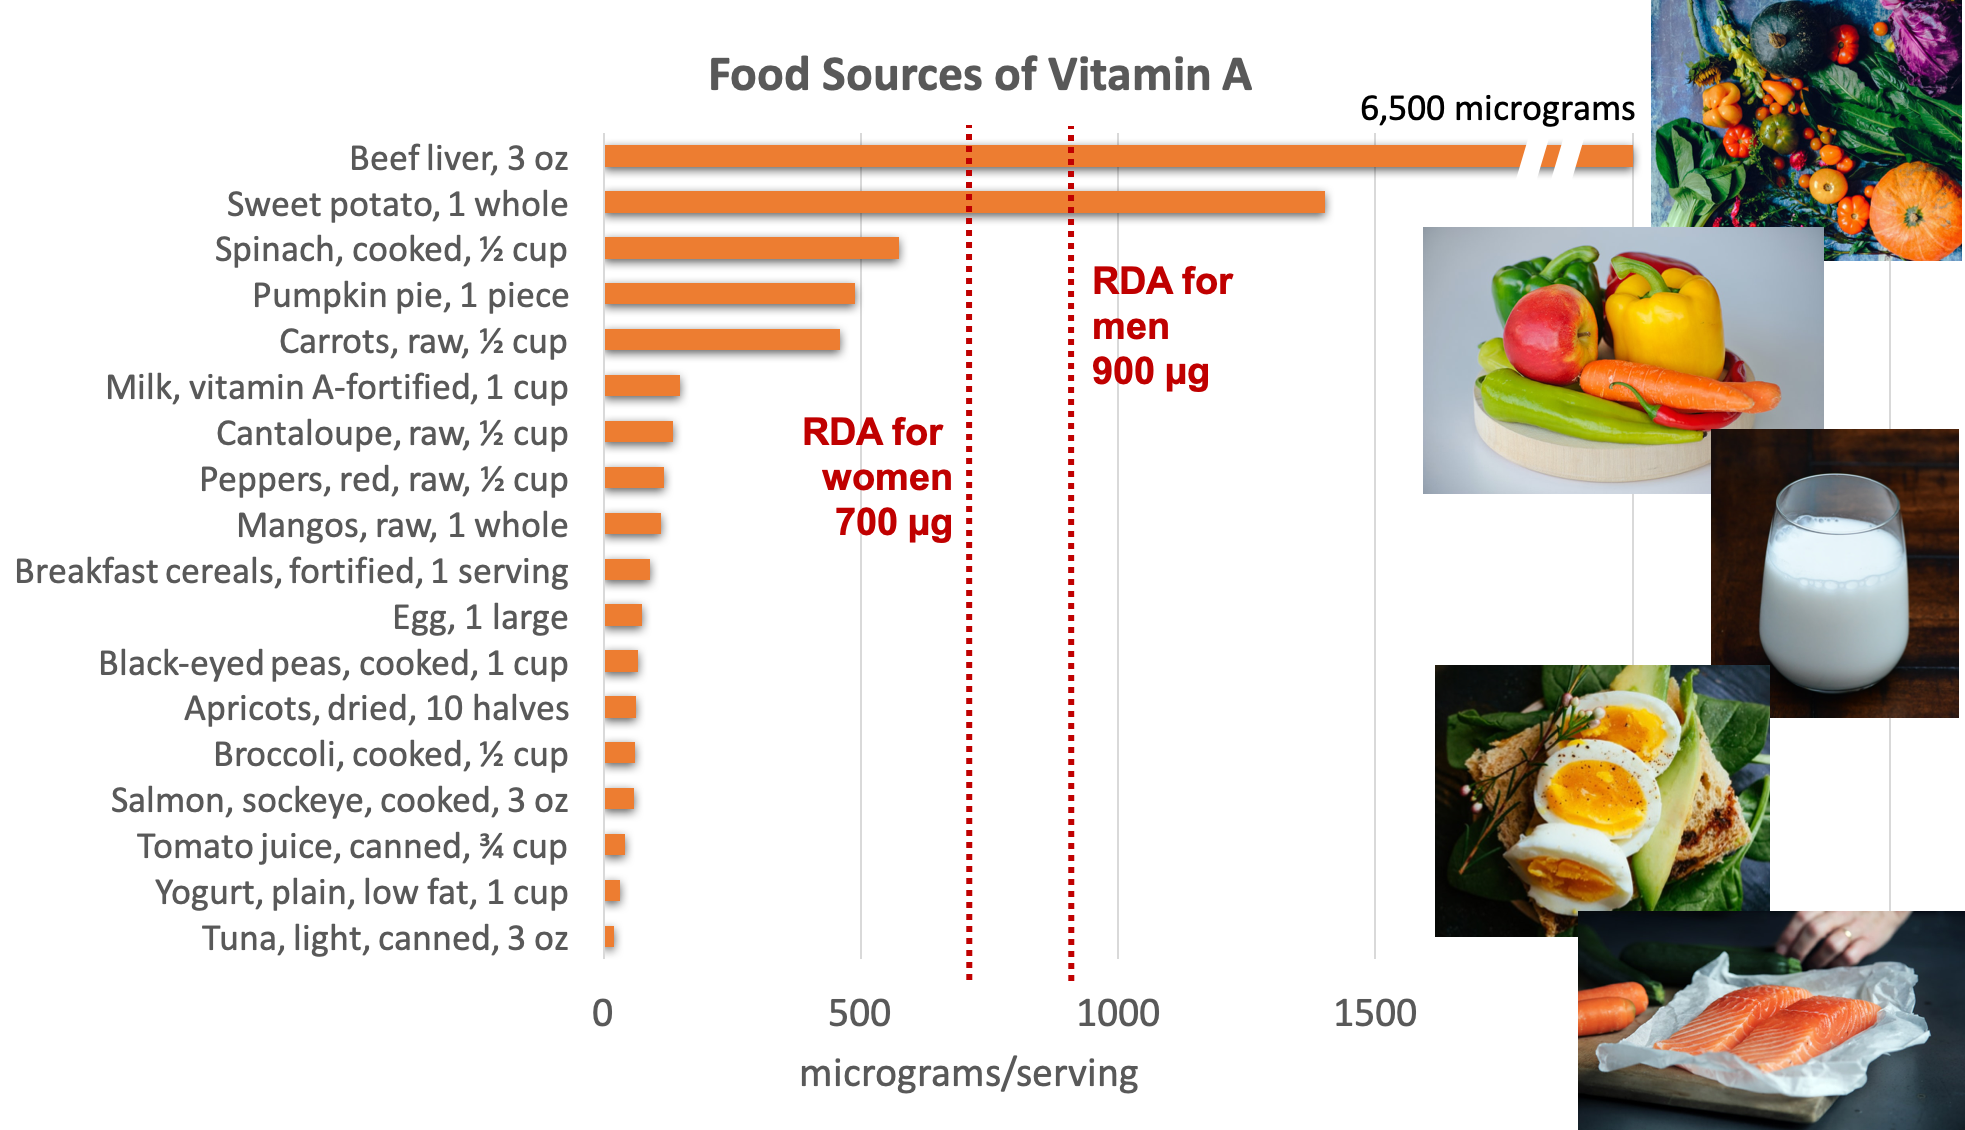 Bar graph showing dietary sources of vitamin A compared with the RDA for women of 700 micrograms and for men of 900 micrograms per day. Top sources include beef liver, sweet potato, spinach, pumpkin pie, carrots, milk, eggs, fish, and other fruits and vegetables.